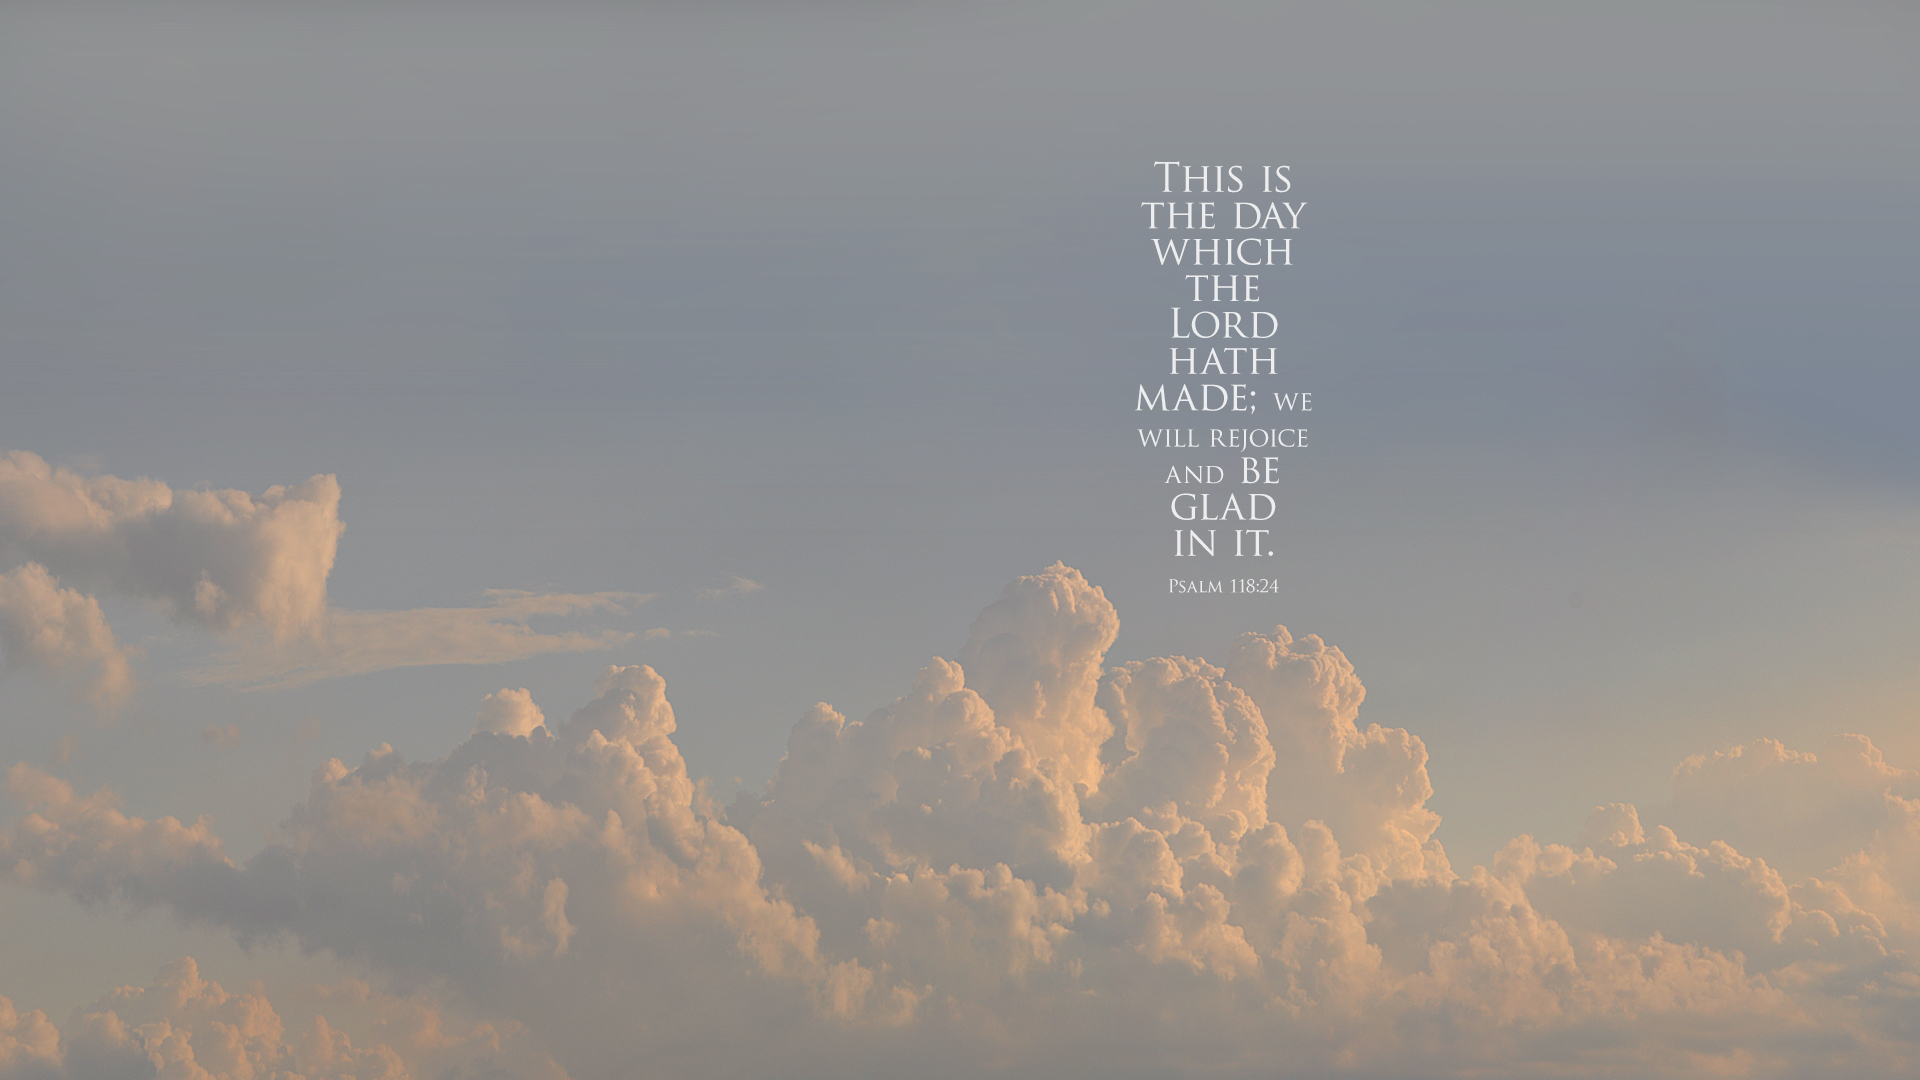 Clouds Chicago–Psalm 118:24–Wallpaper